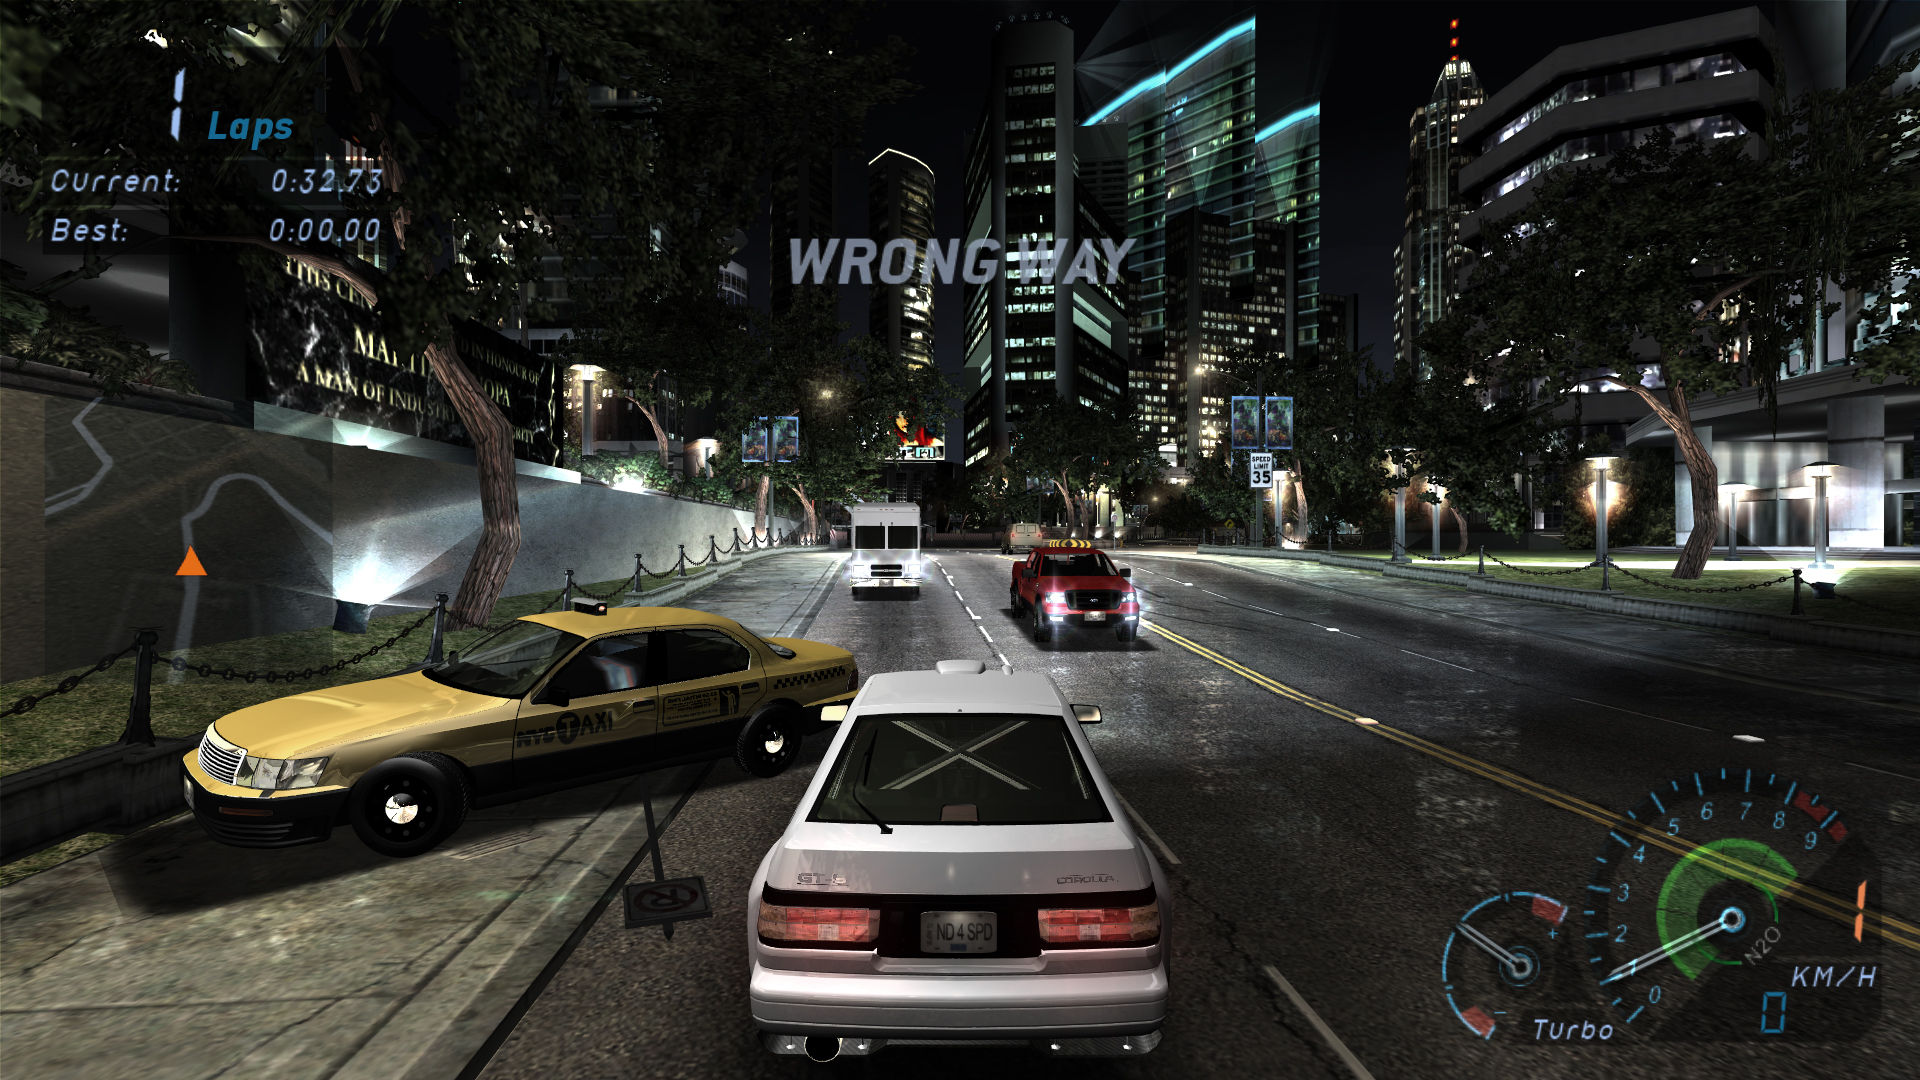 New traffic models image - mSE (m2011 v2 0) mod for Need For